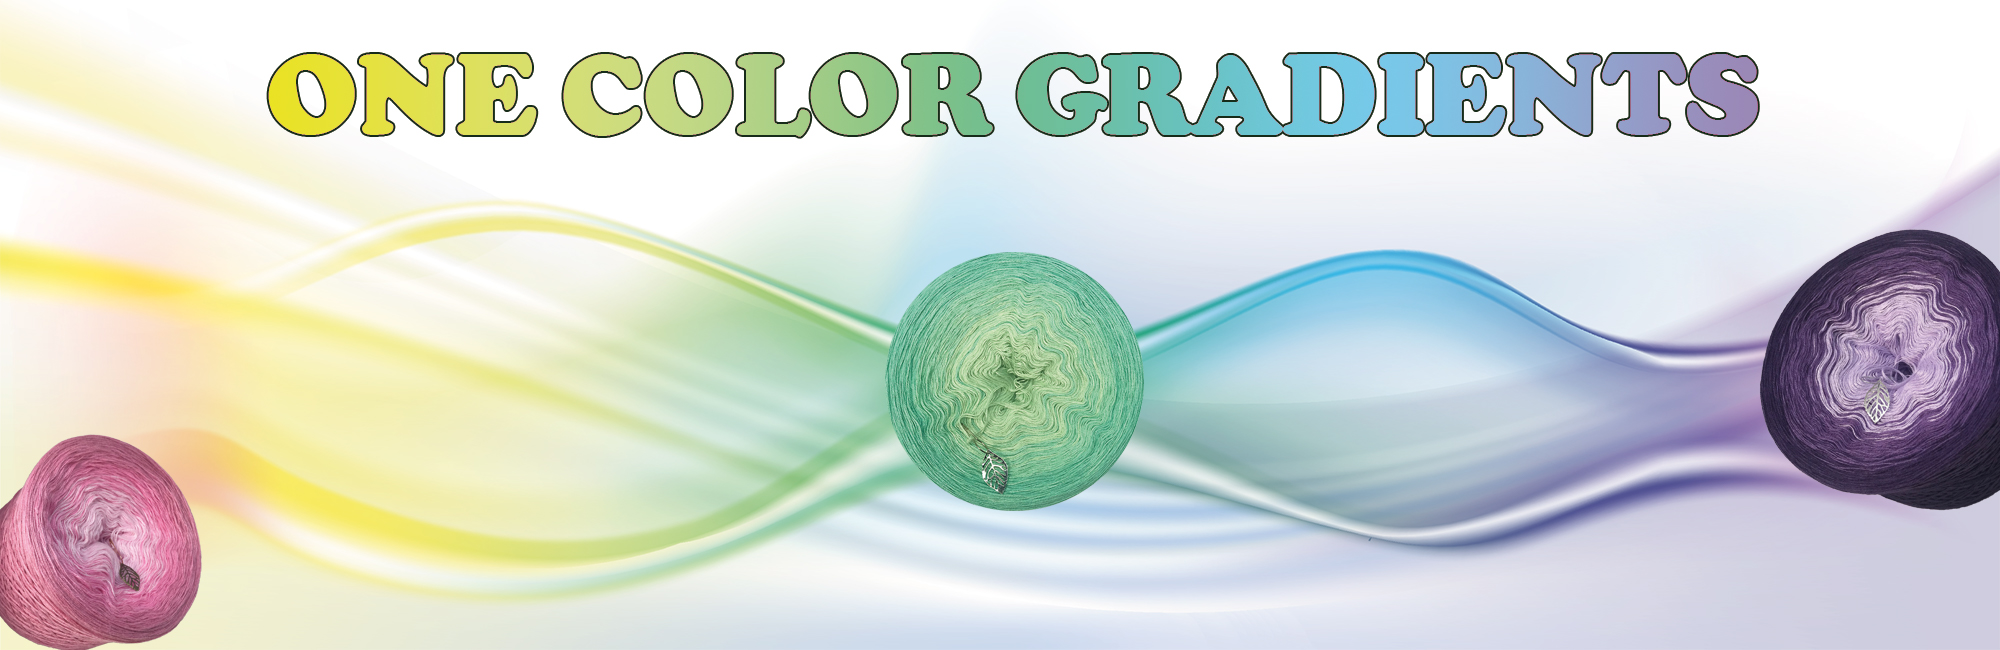 One Color Gradiants